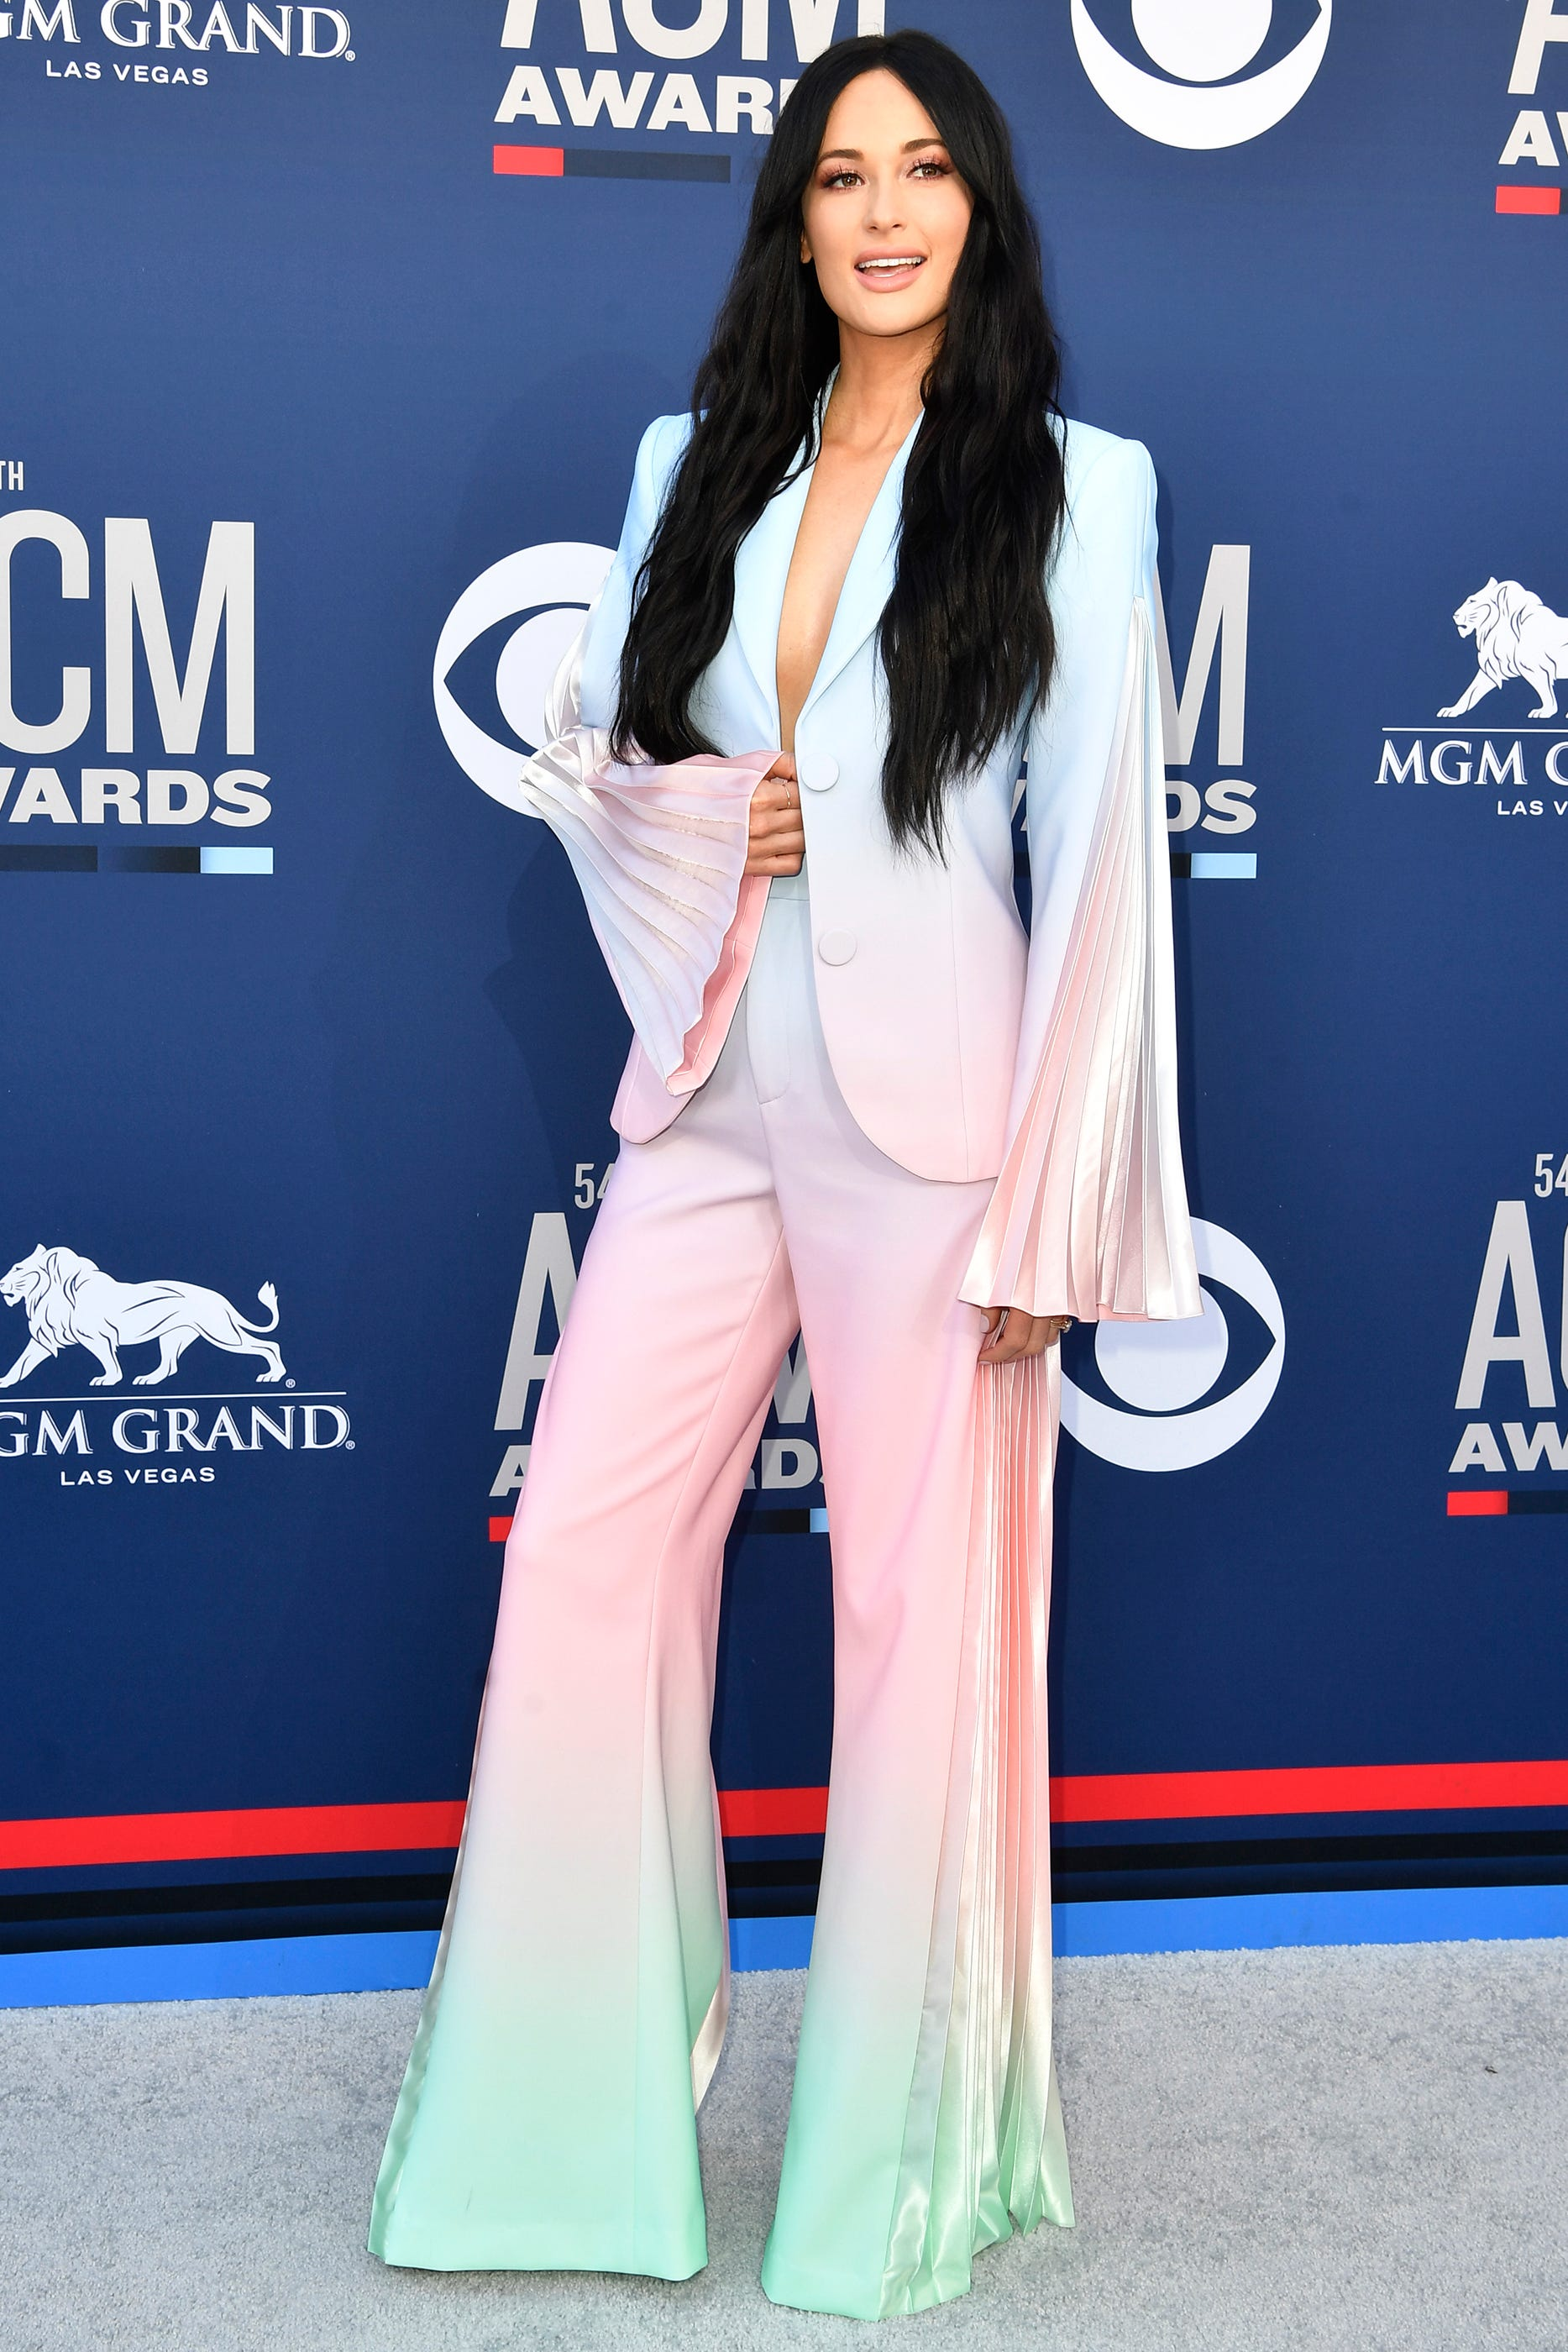 ACM Awards fashion: Kacey Musgraves, Miranda Lambert and other red carpet highlights